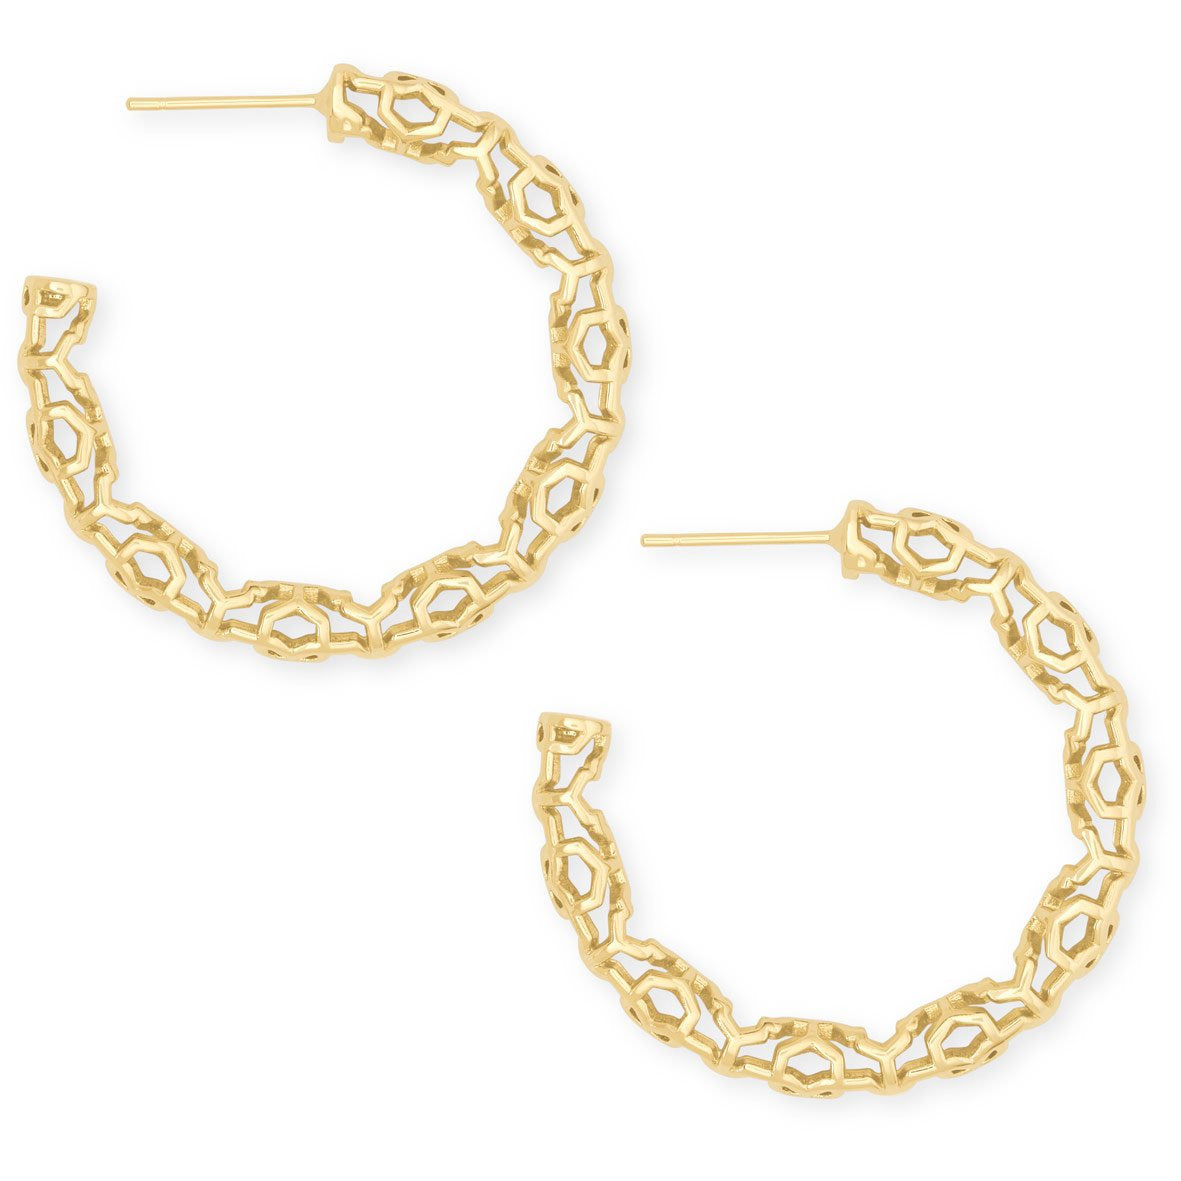 Kendra Scott - Maggie Small Hoop Earrings in Gold Filigree, Side View